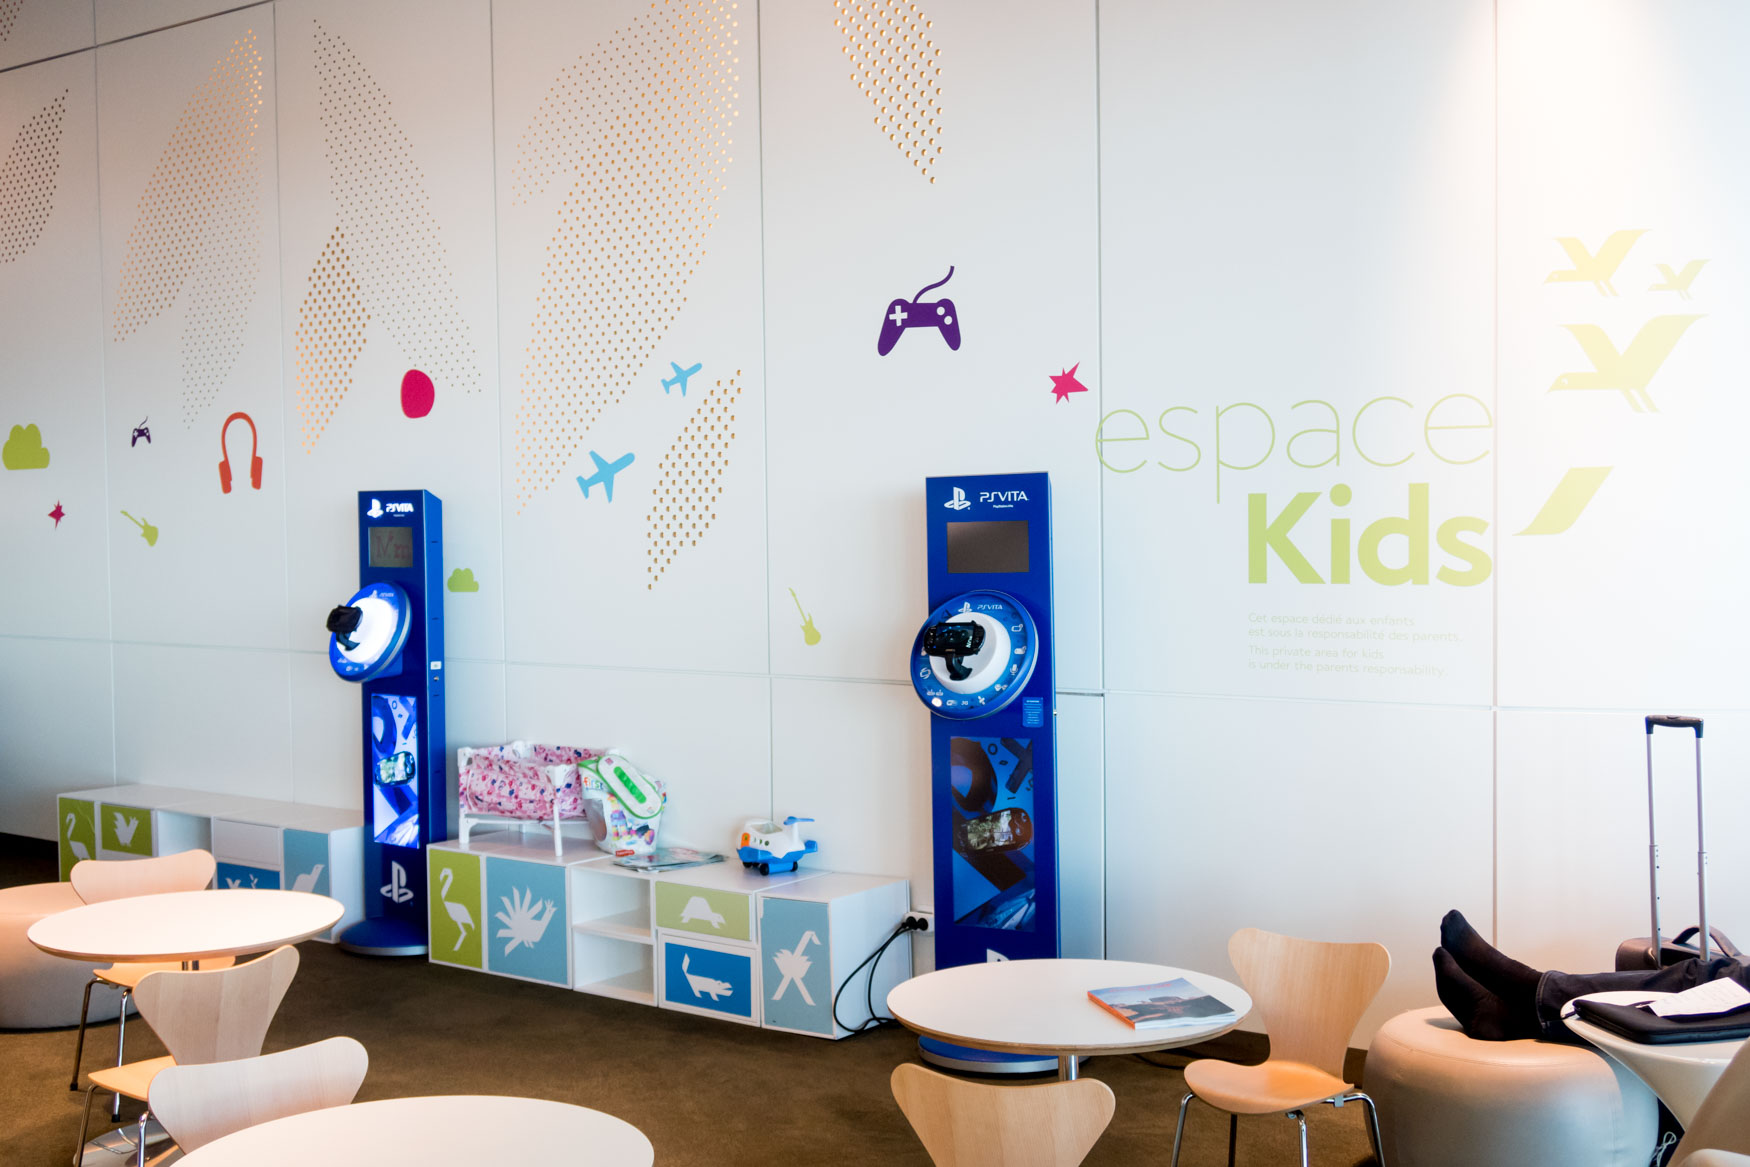 Air France espace Kids